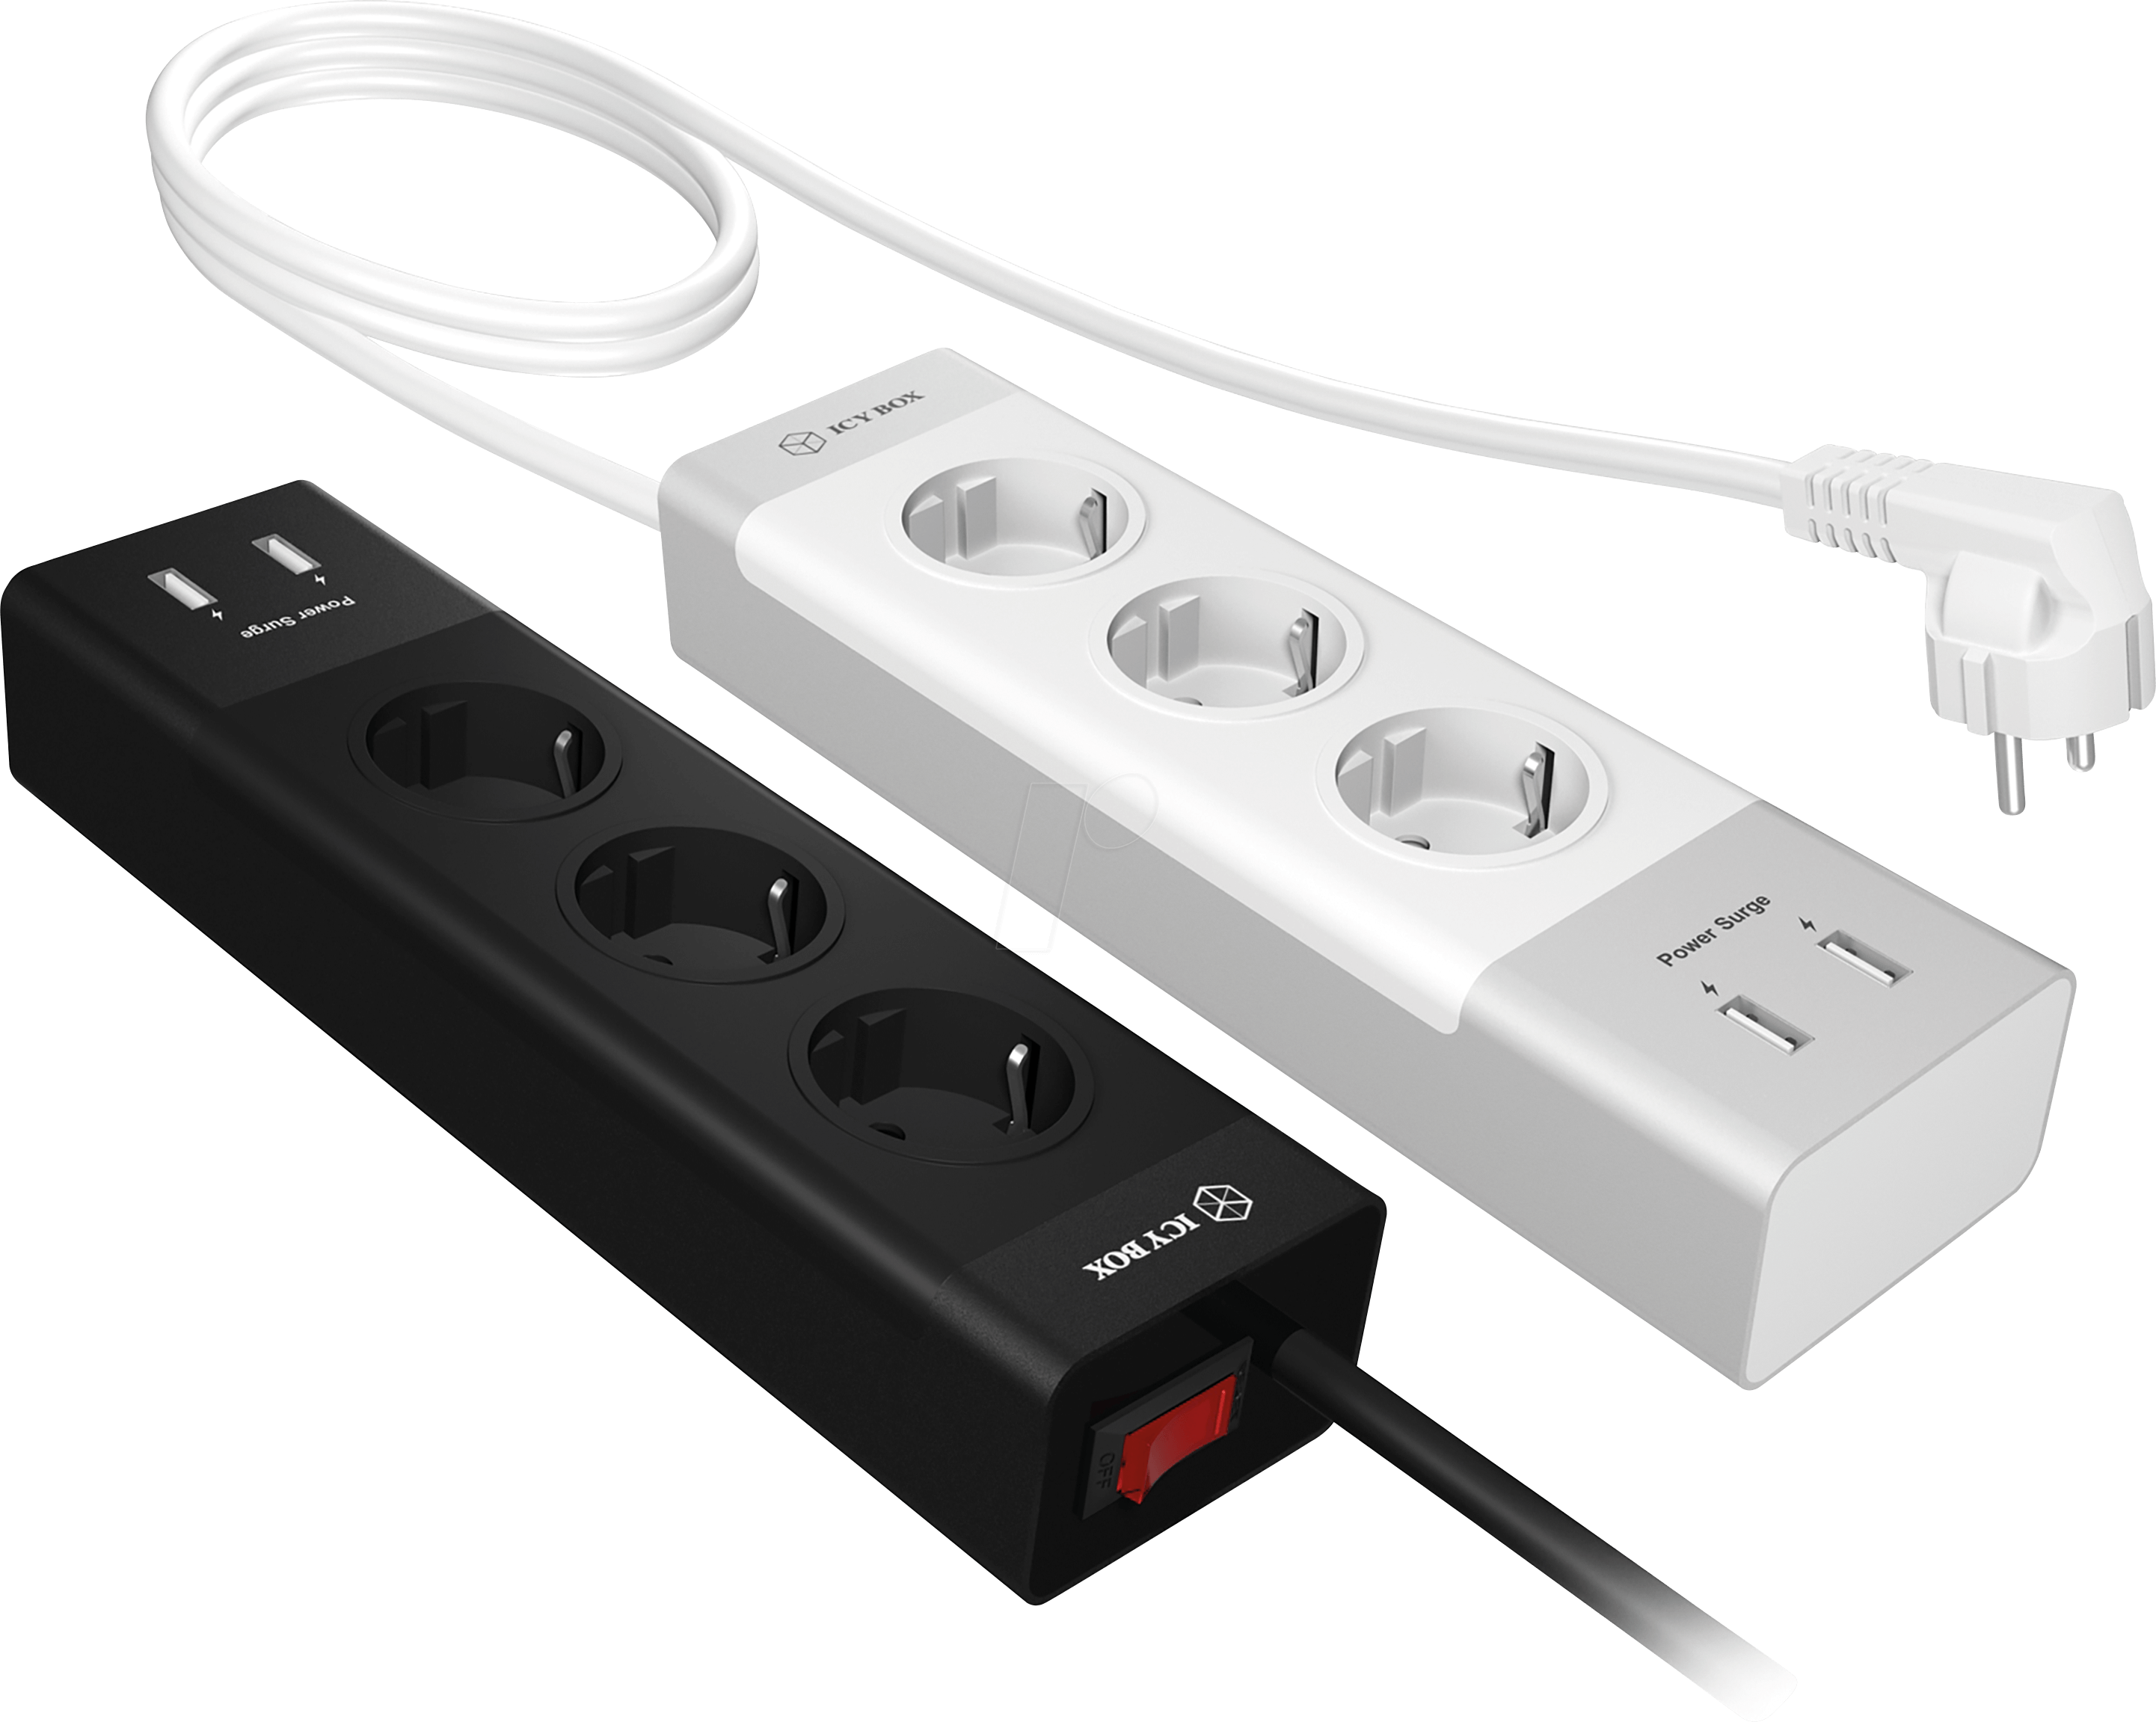 Mehrfachsteckdose Usb Icy Ib Cb004 S 3 Sockets And 2 Usb Charging Ports